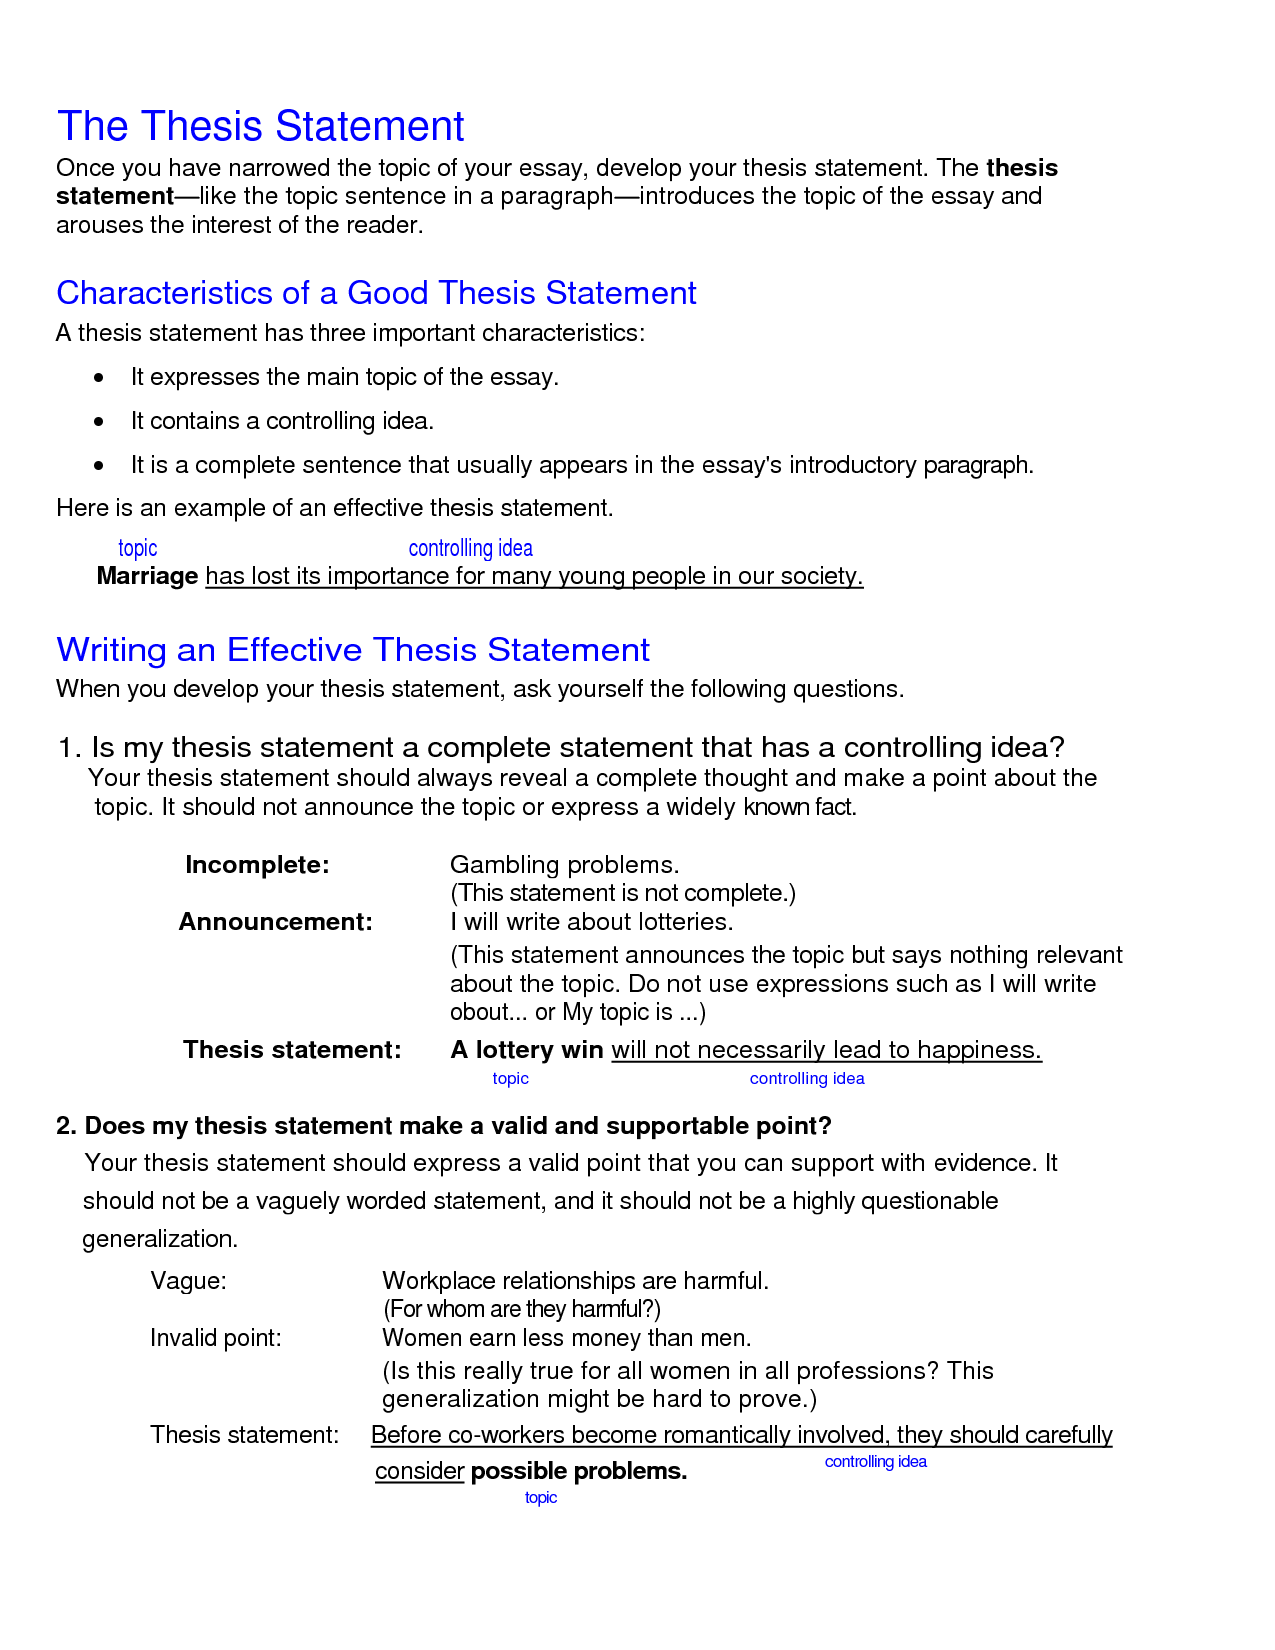 015 Thesis Statement For Argumentative Essay Template Vi1qgh1r Singular On Education Animal Testing Gun Control Full